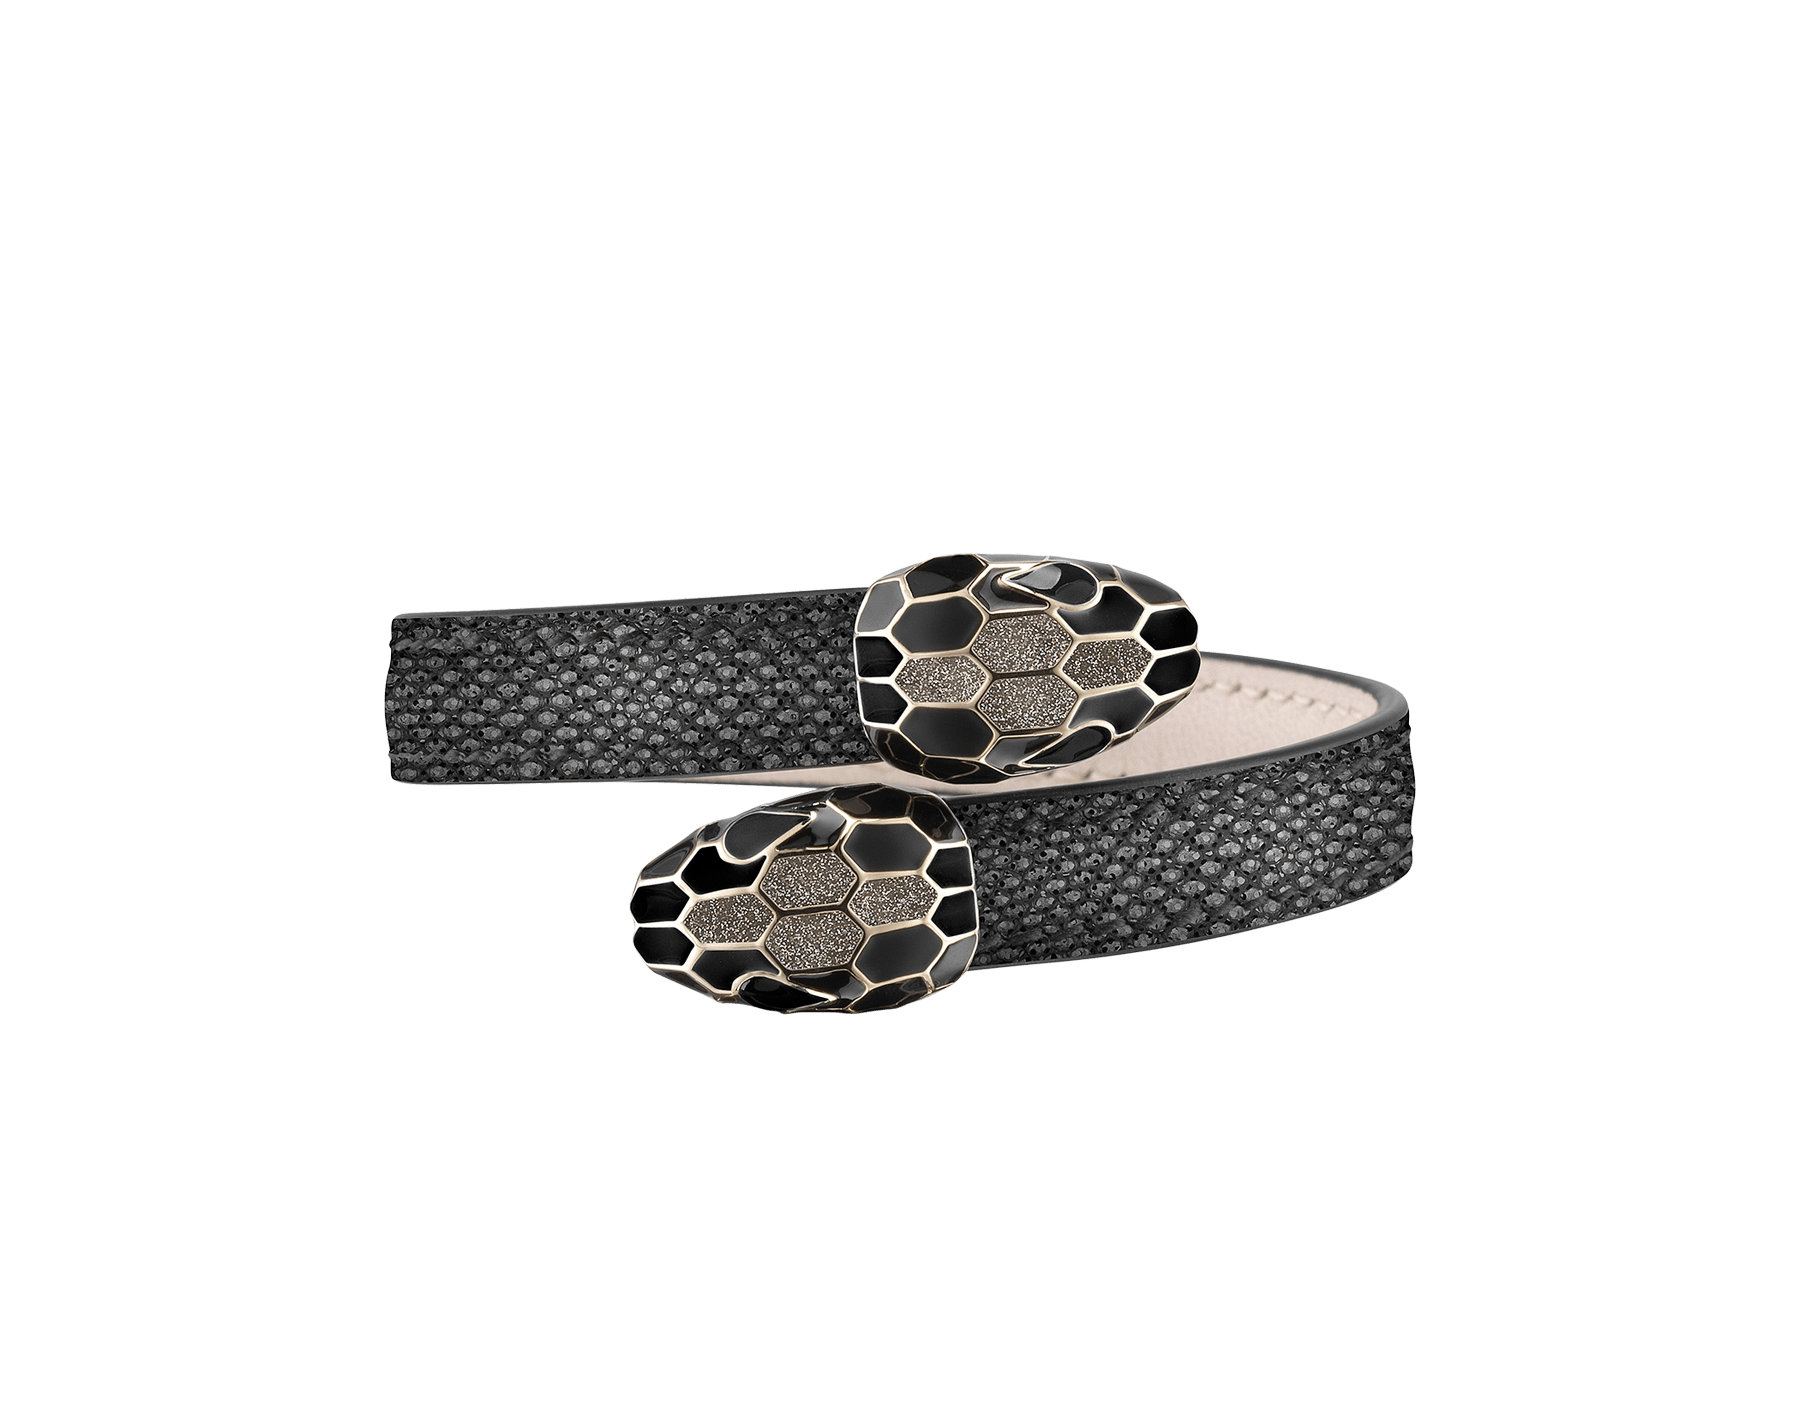 Serpenti Forever soft bangle bracelet in moon silver metallic karung skin, with brass light gold plated hardware. Iconic contraire snakehead décor in black and glitter hawk's eye enamel, with black enamel eyes SerpSoftContr-MK-MS image 1